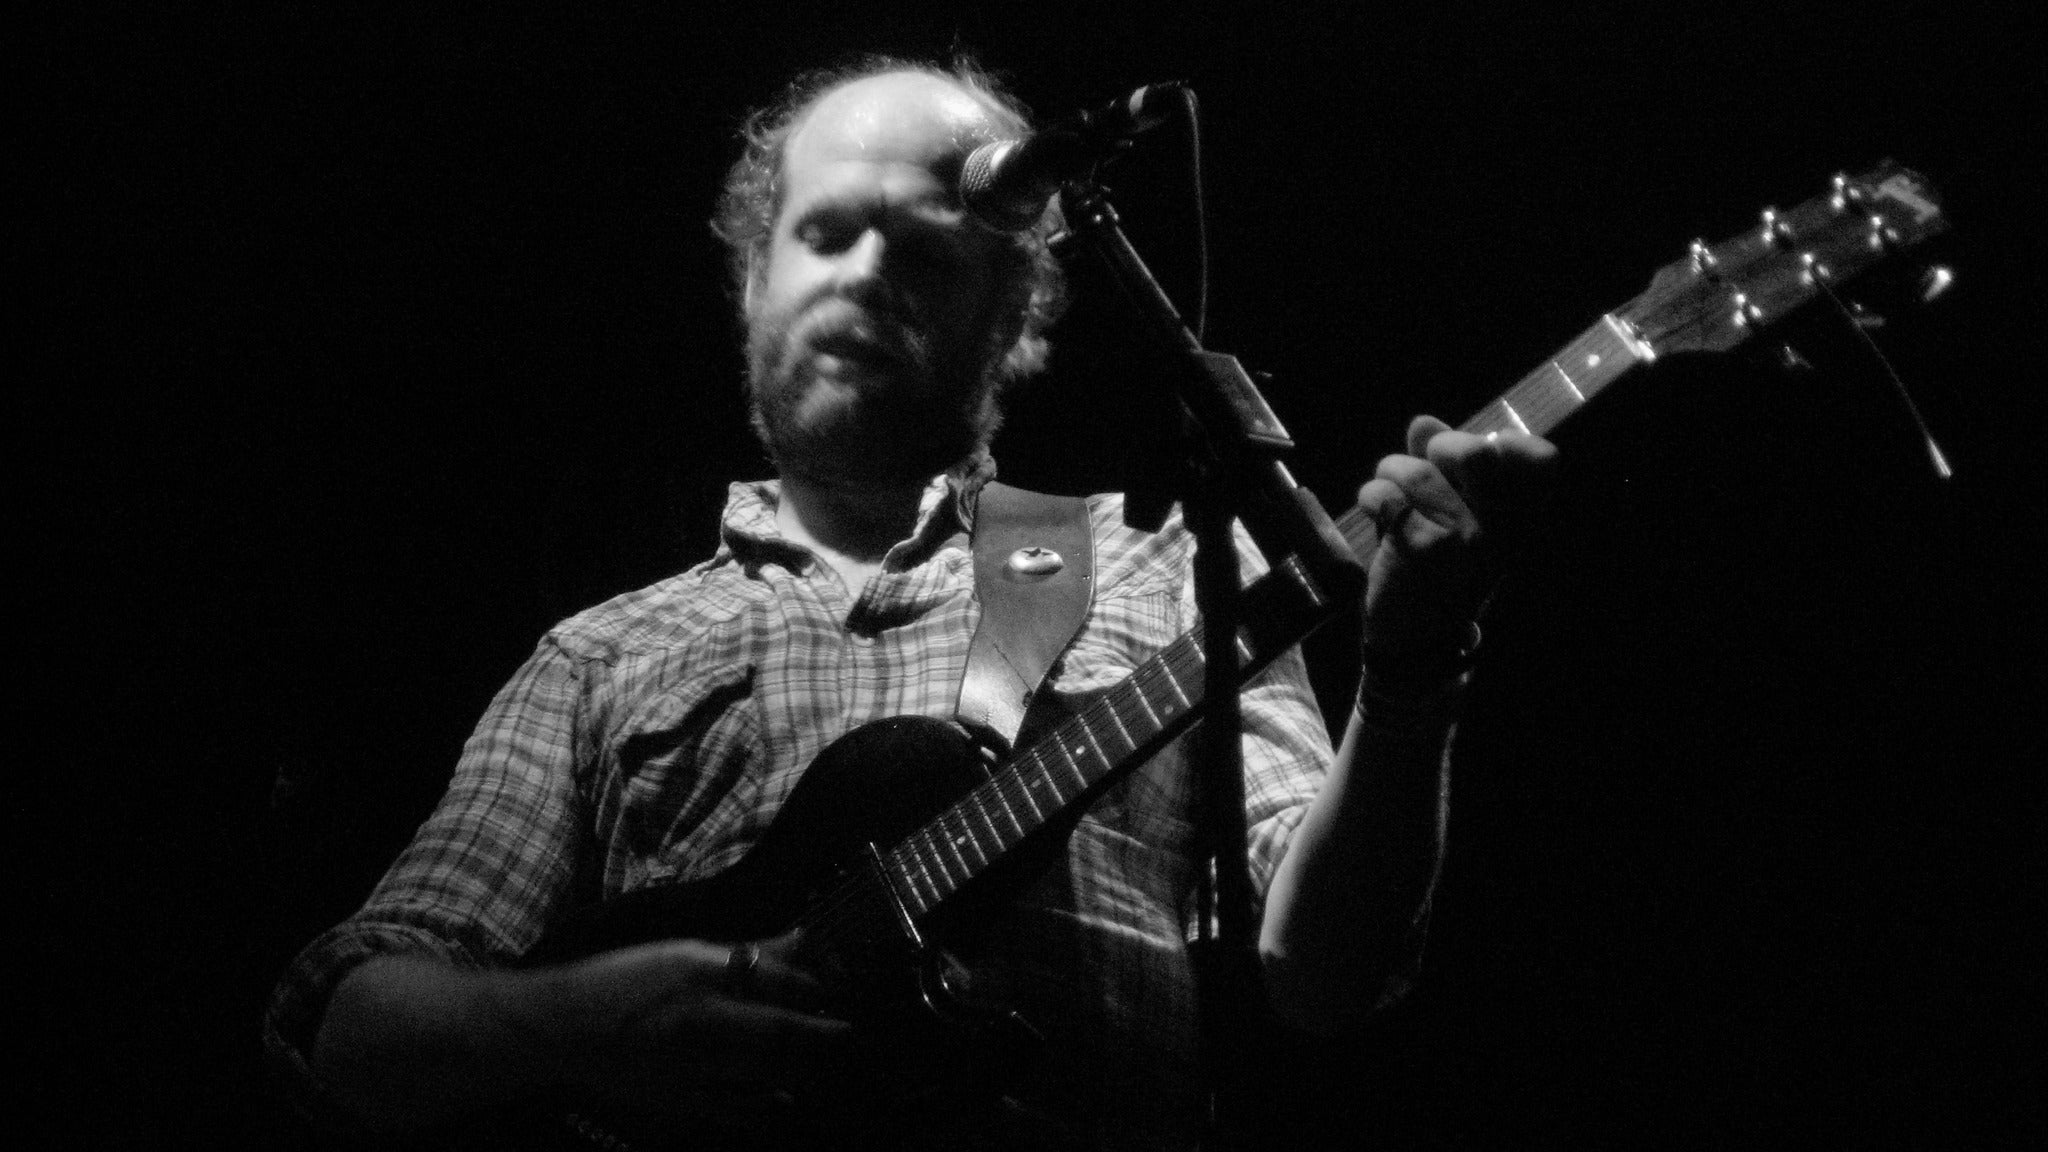 Bonnie Prince Billy at Headliners Music Hall